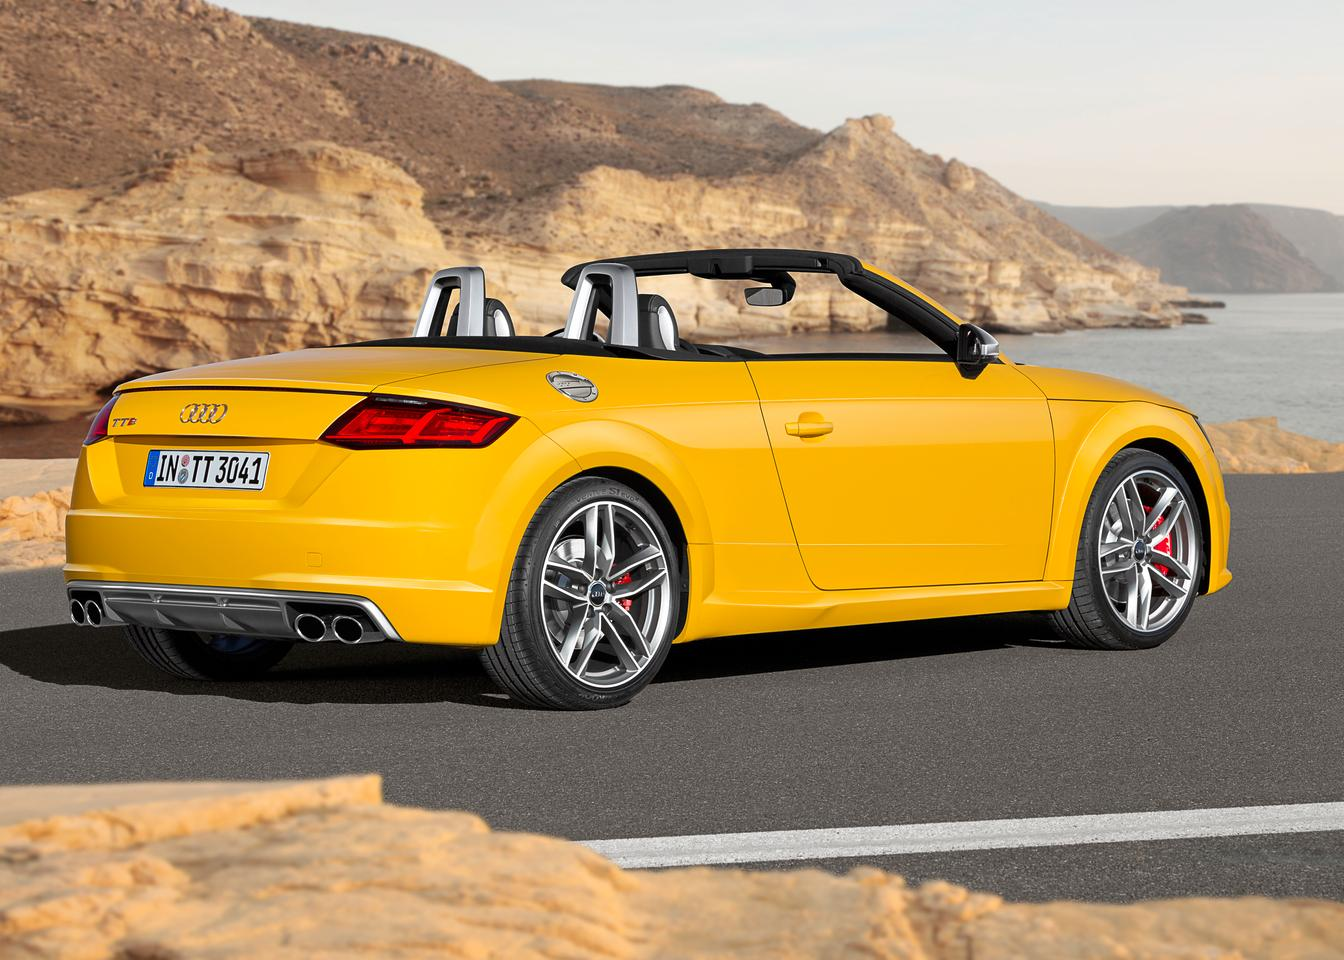 The Audi TT Roadster is based off the same MQB platform as its coupe brother